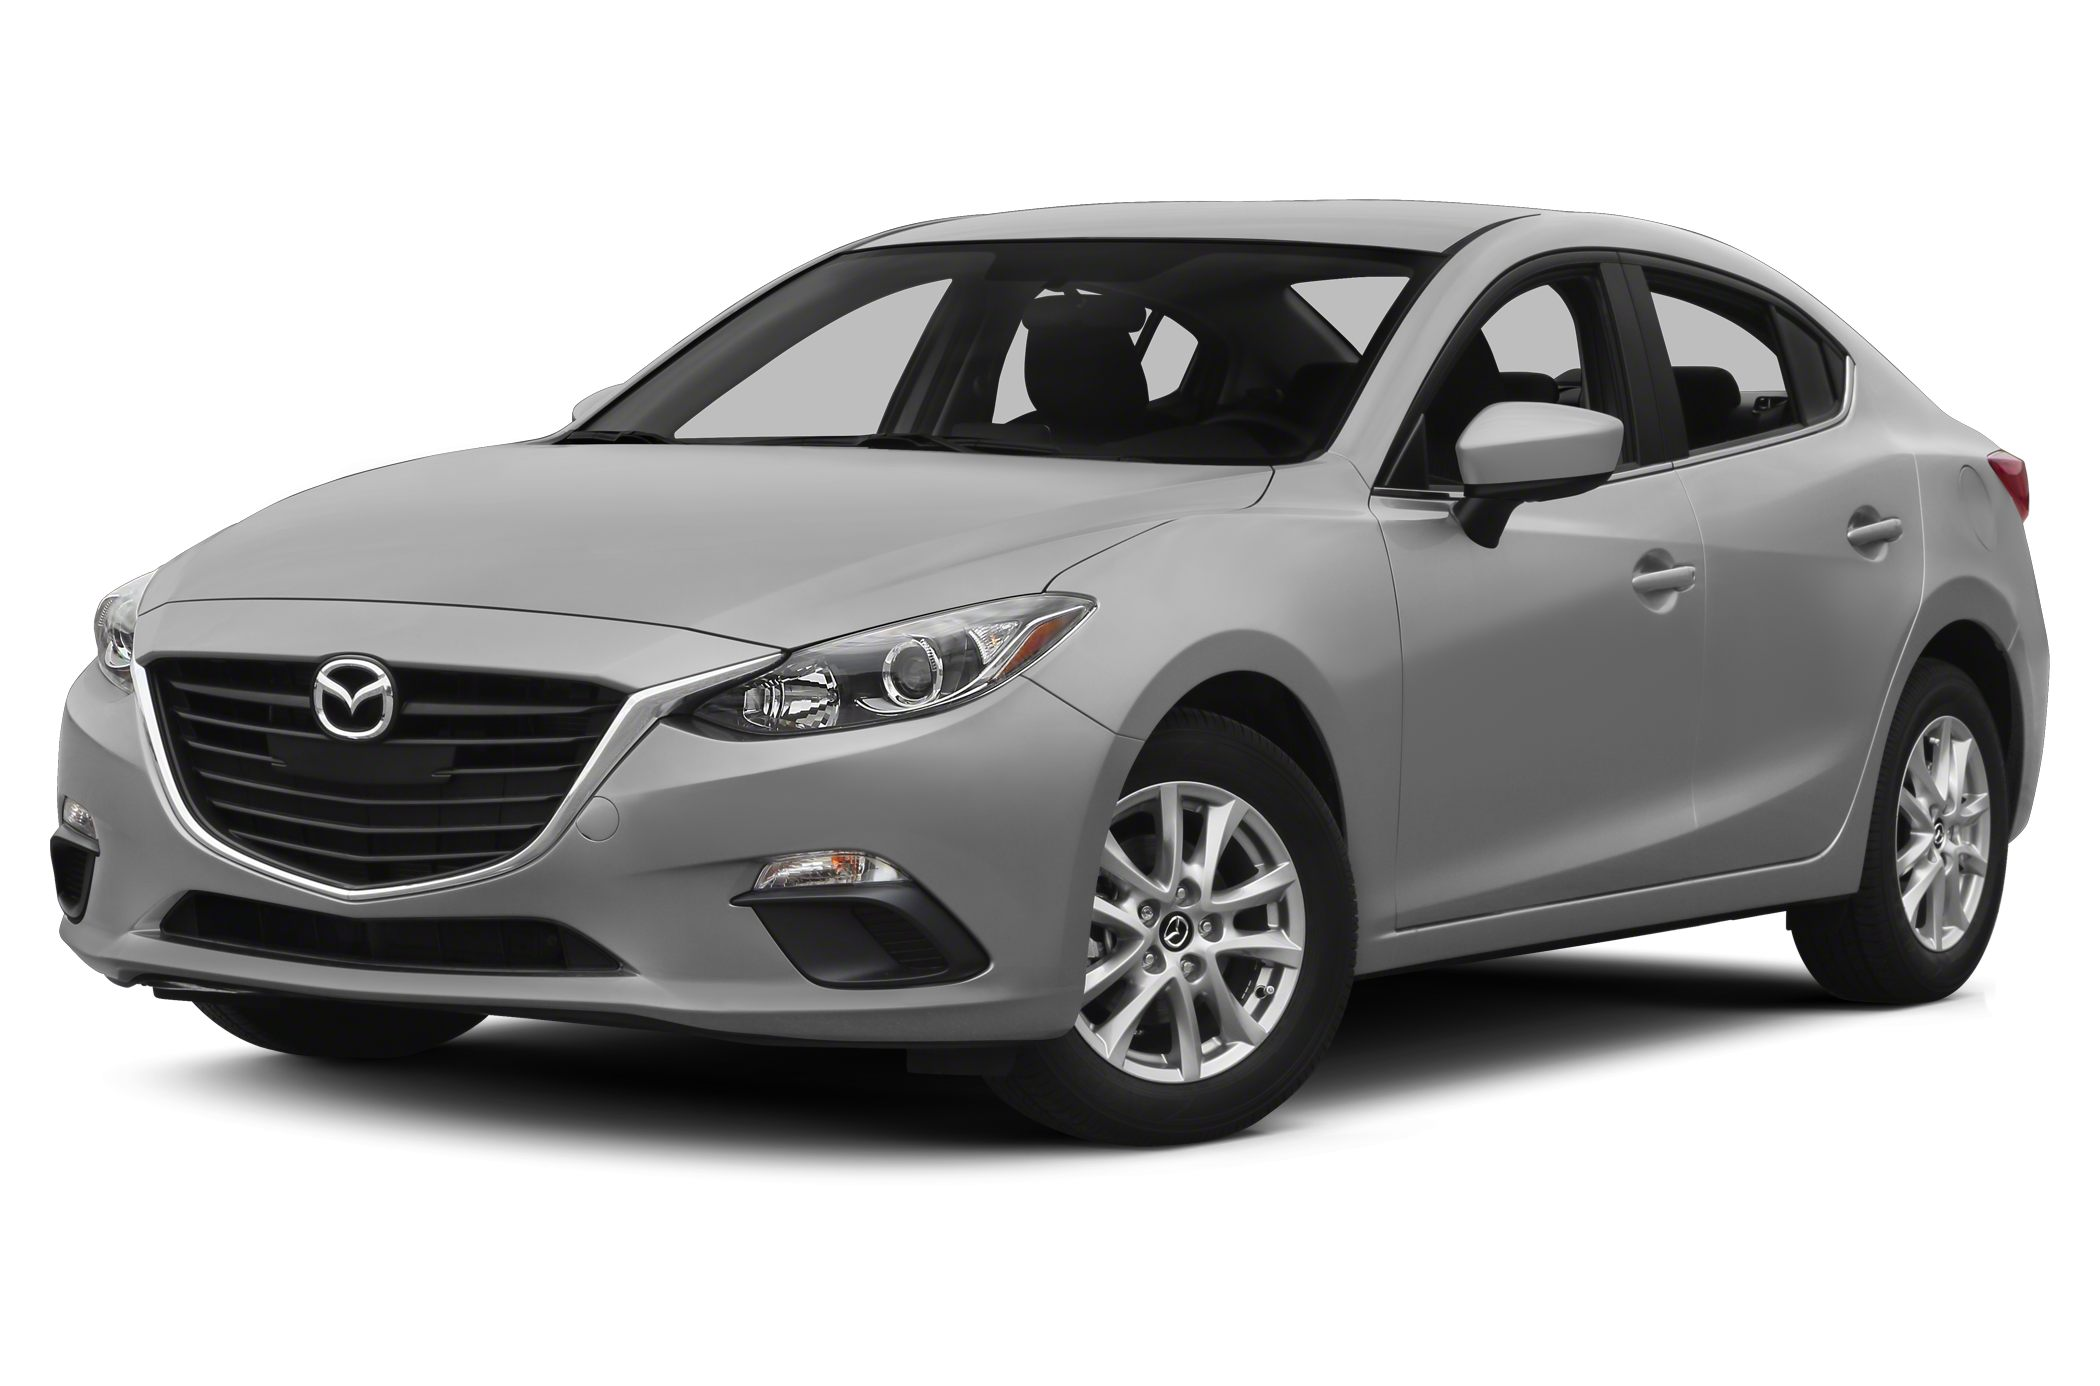 2015 Mazda Mazda3 I Grand Touring Sedan for sale in Waldorf for $21,350 with 0 miles.